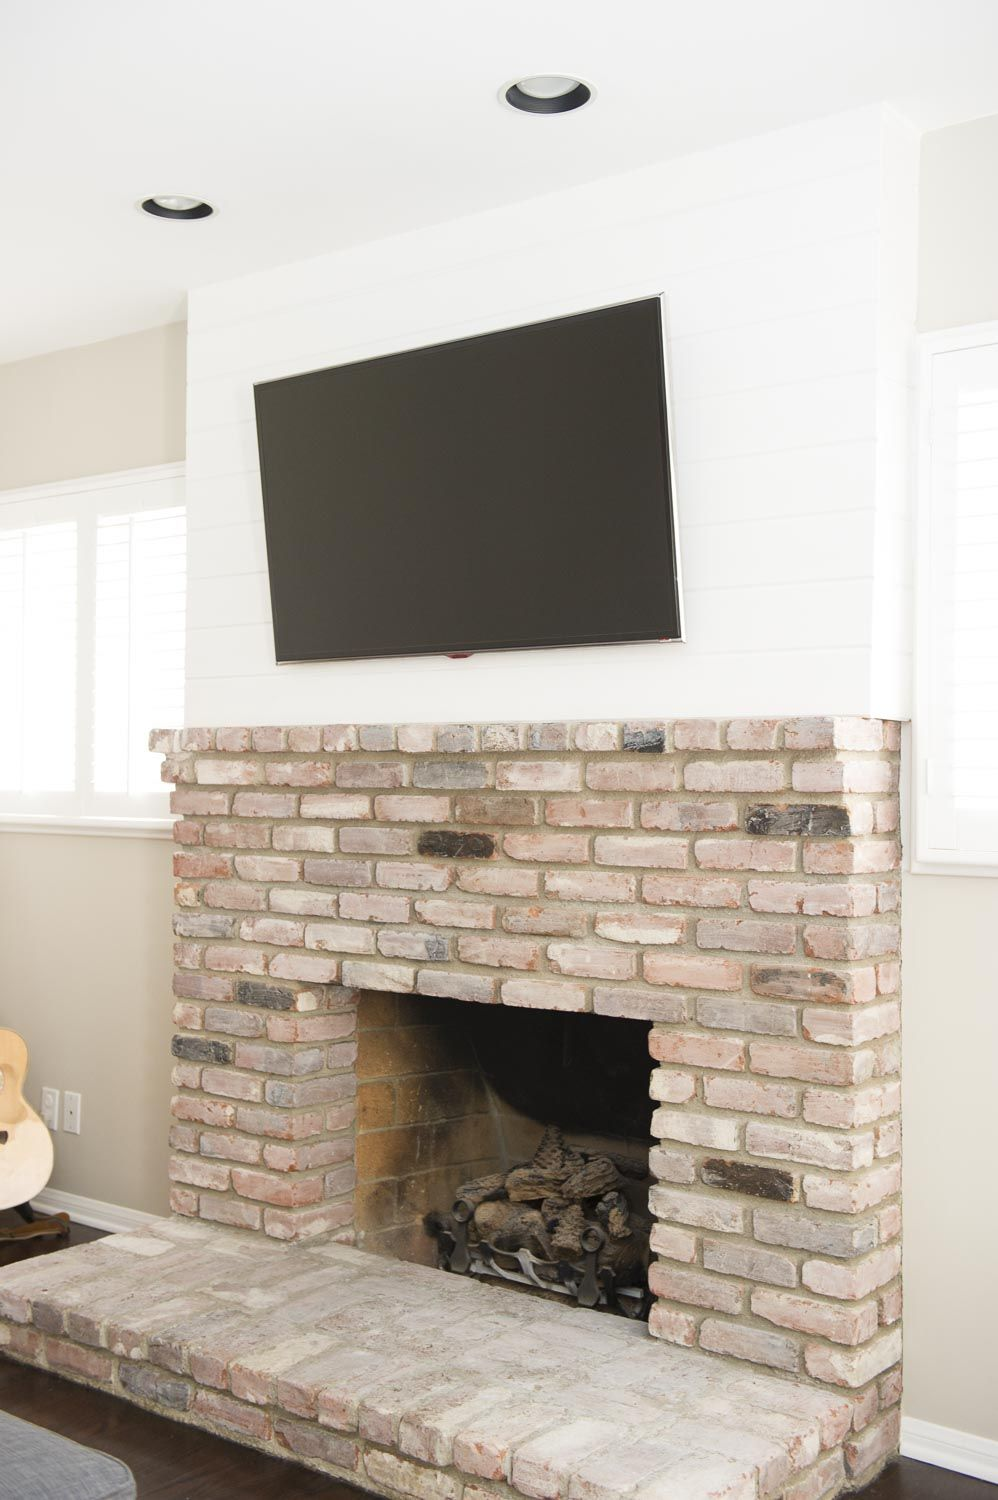 Fireplace Renovation Whitewashed Brick Shiplap Wrap On Upper Section Paint Flat White On Wood And Trim Benj Family Dining Rooms Fireplace Painting Shiplap